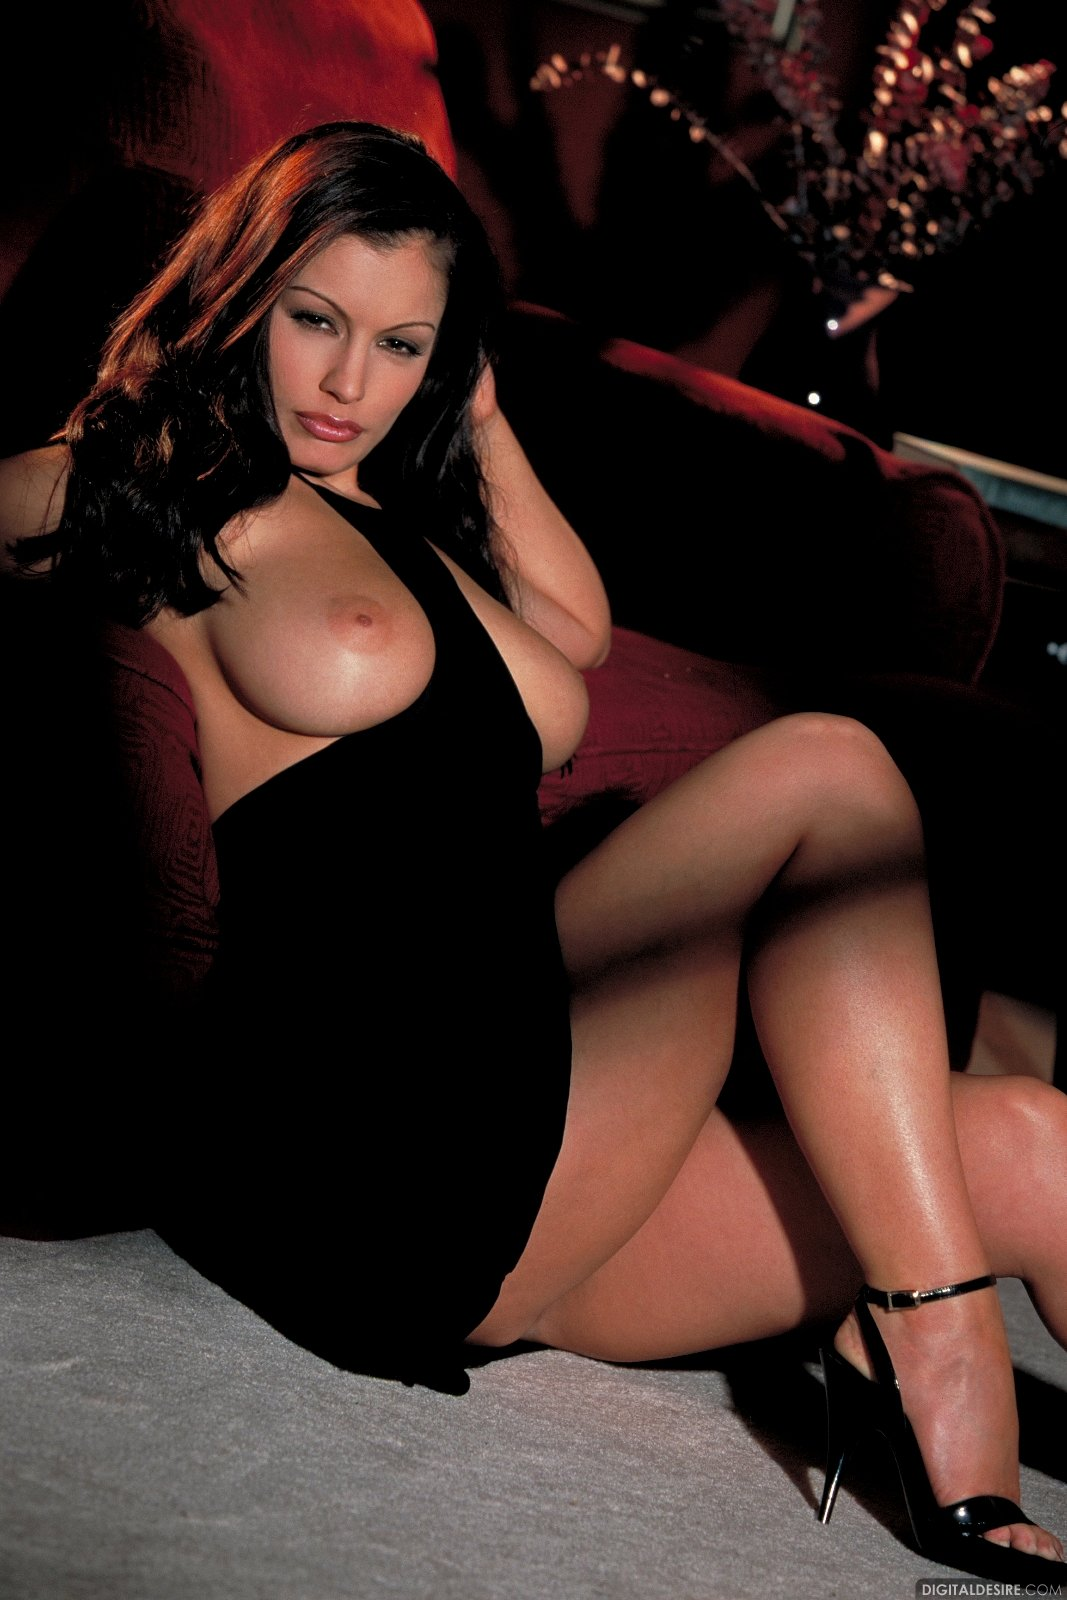 aria giovanni busts out her wonders from her black dress